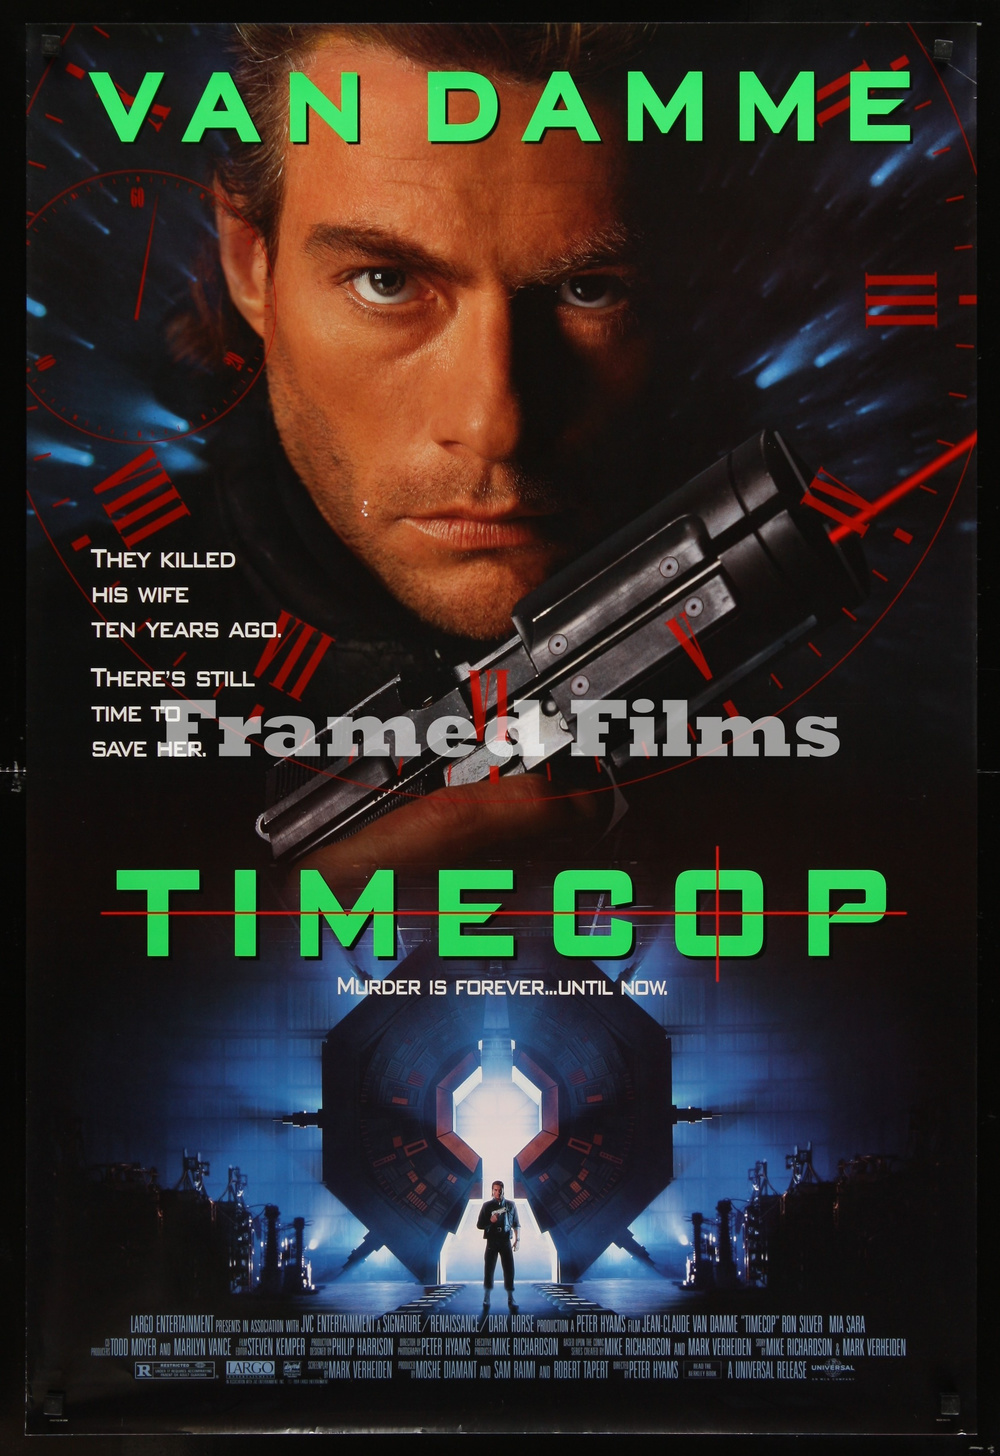 timecop_NZ03919_L.jpg